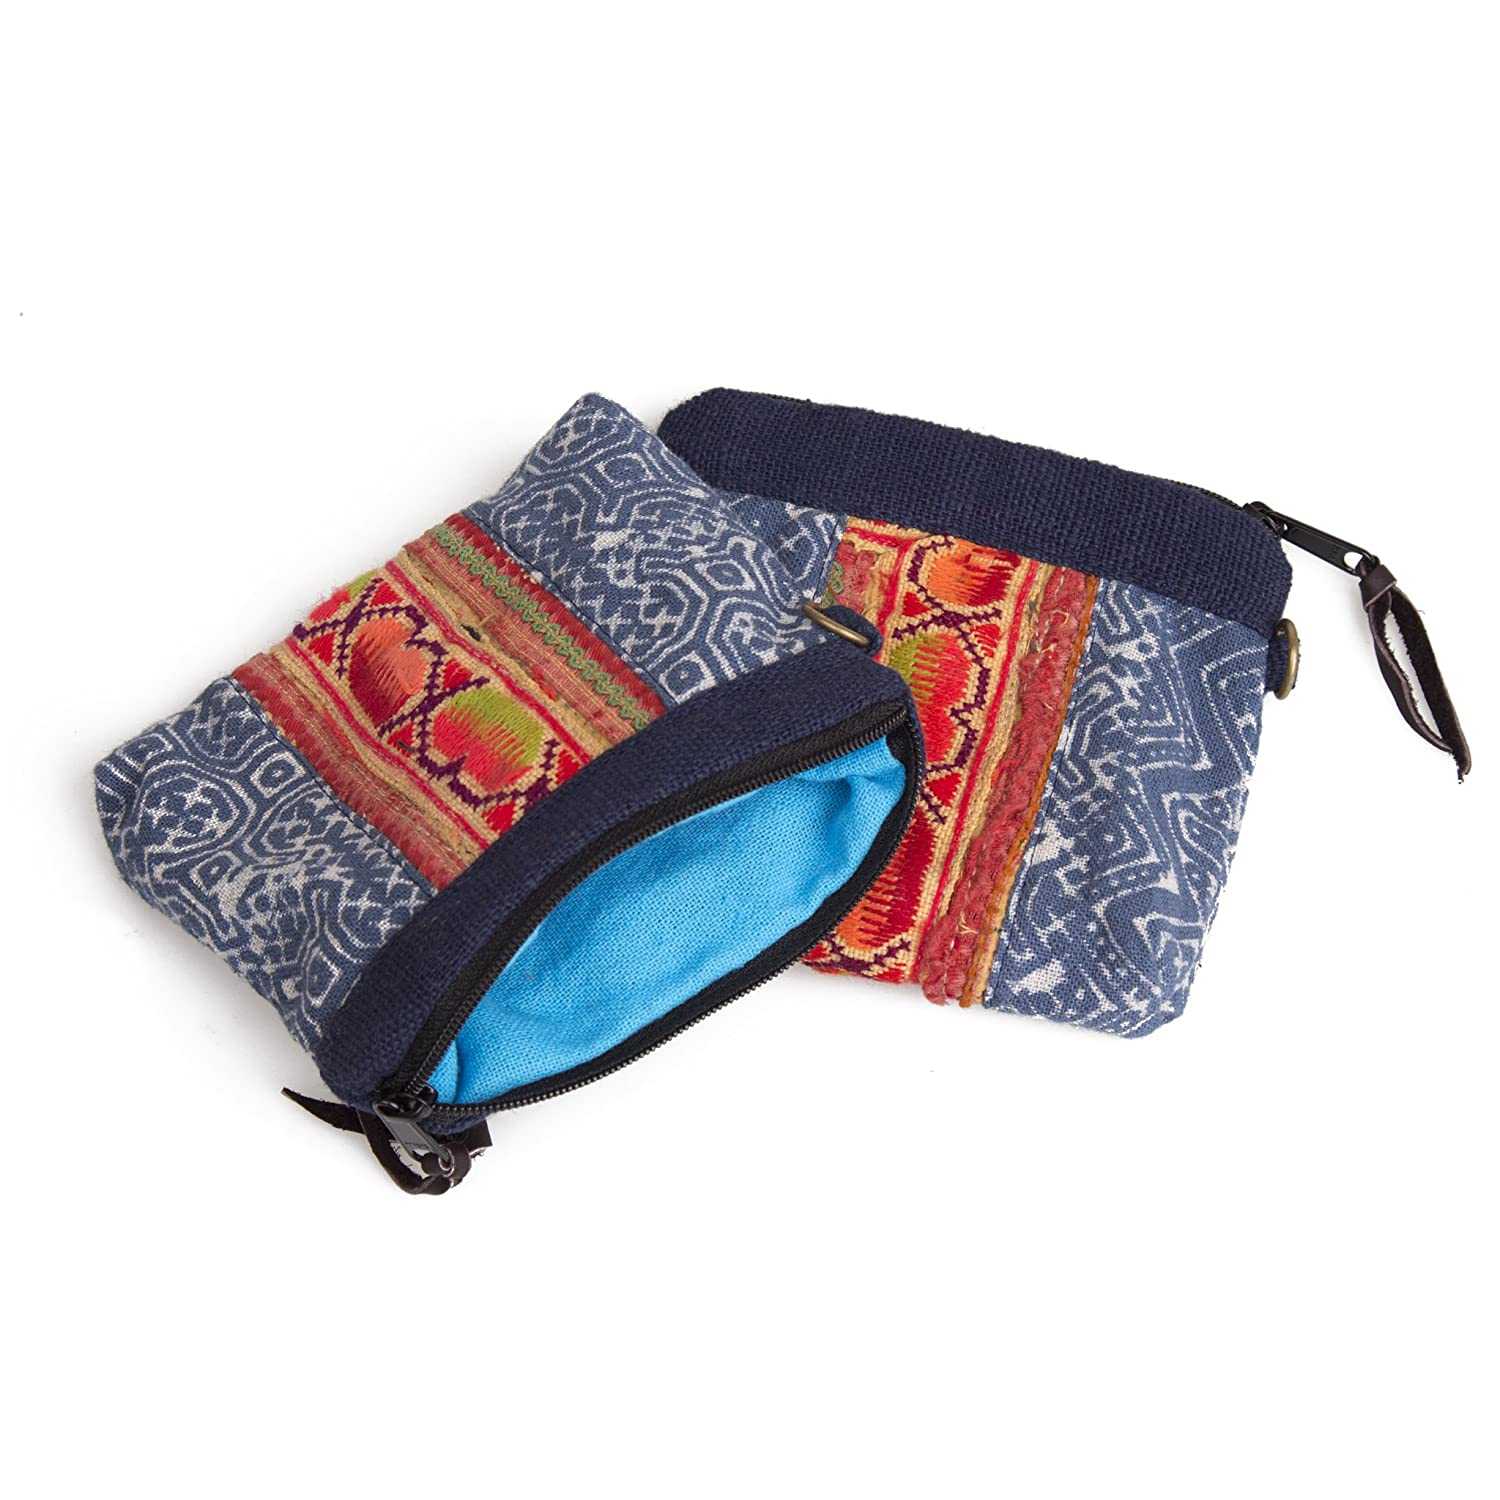 Changnoi Unique Womans Coin Purse with Vintage Hmong Embroidered Fabric and Batik Fabric in Blue